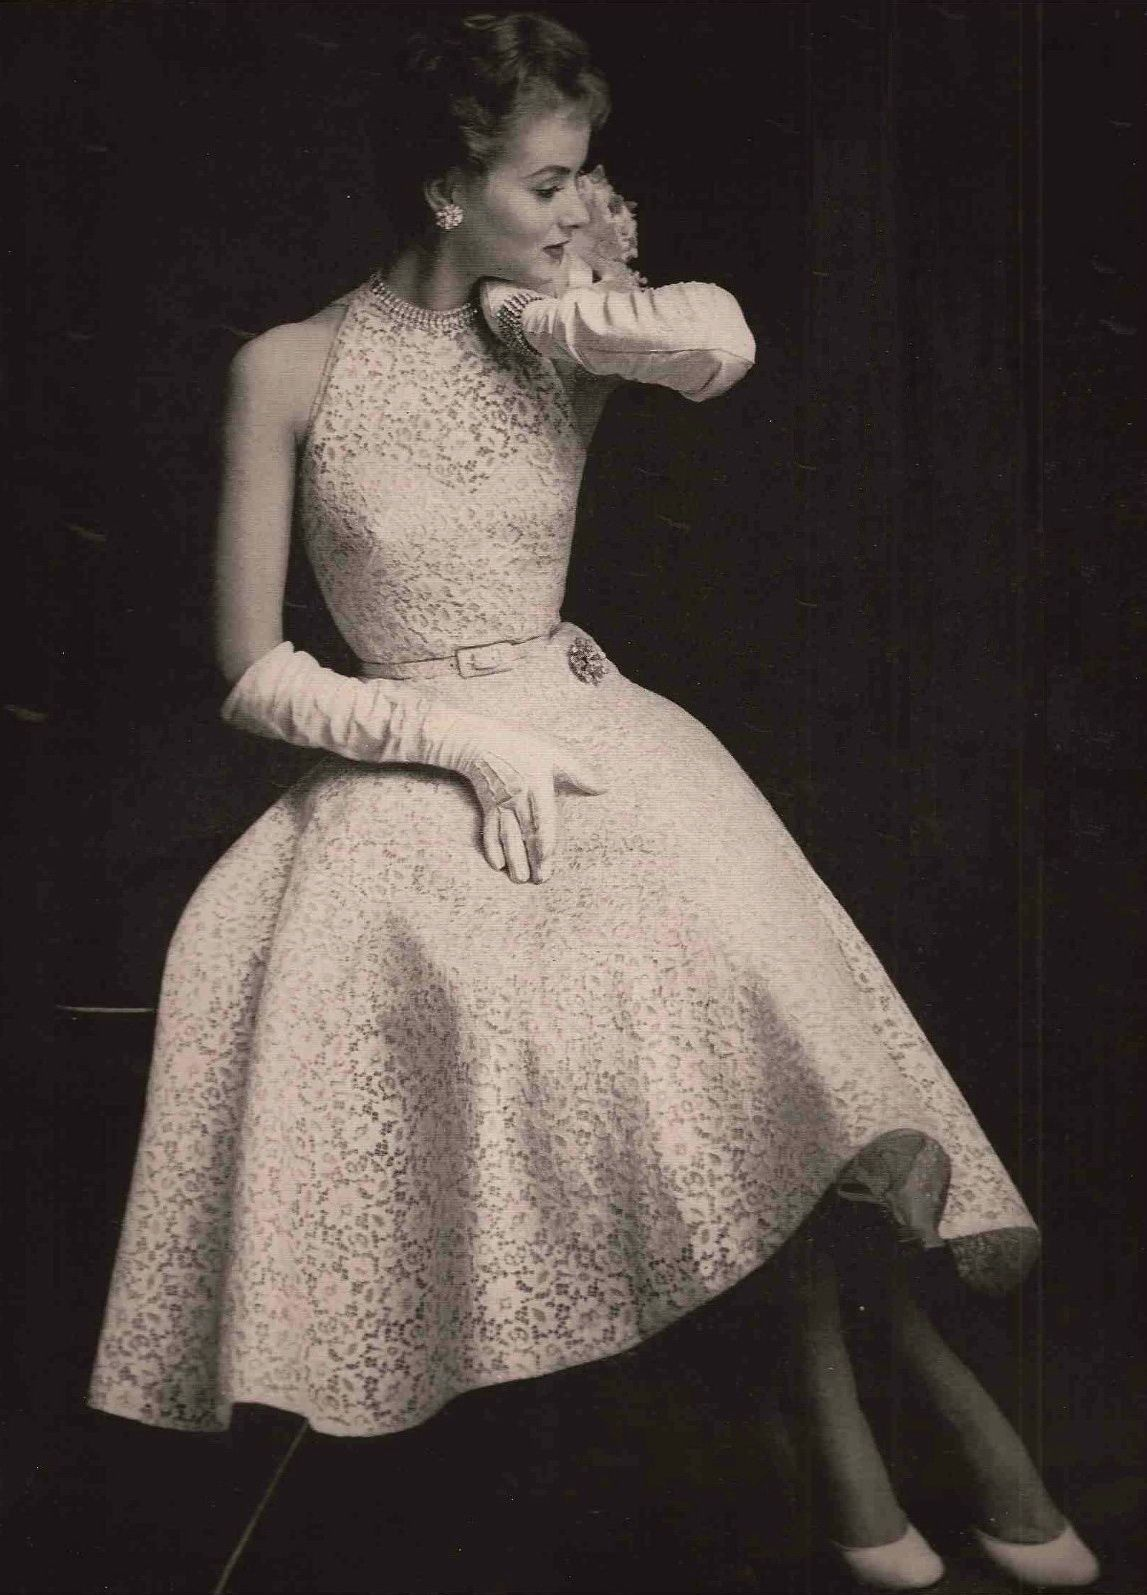 1954--The contrast between this dress and the Rudi Geinrich (?) one really shows the cultural gap between 1954 and 1964. An abyss, really.